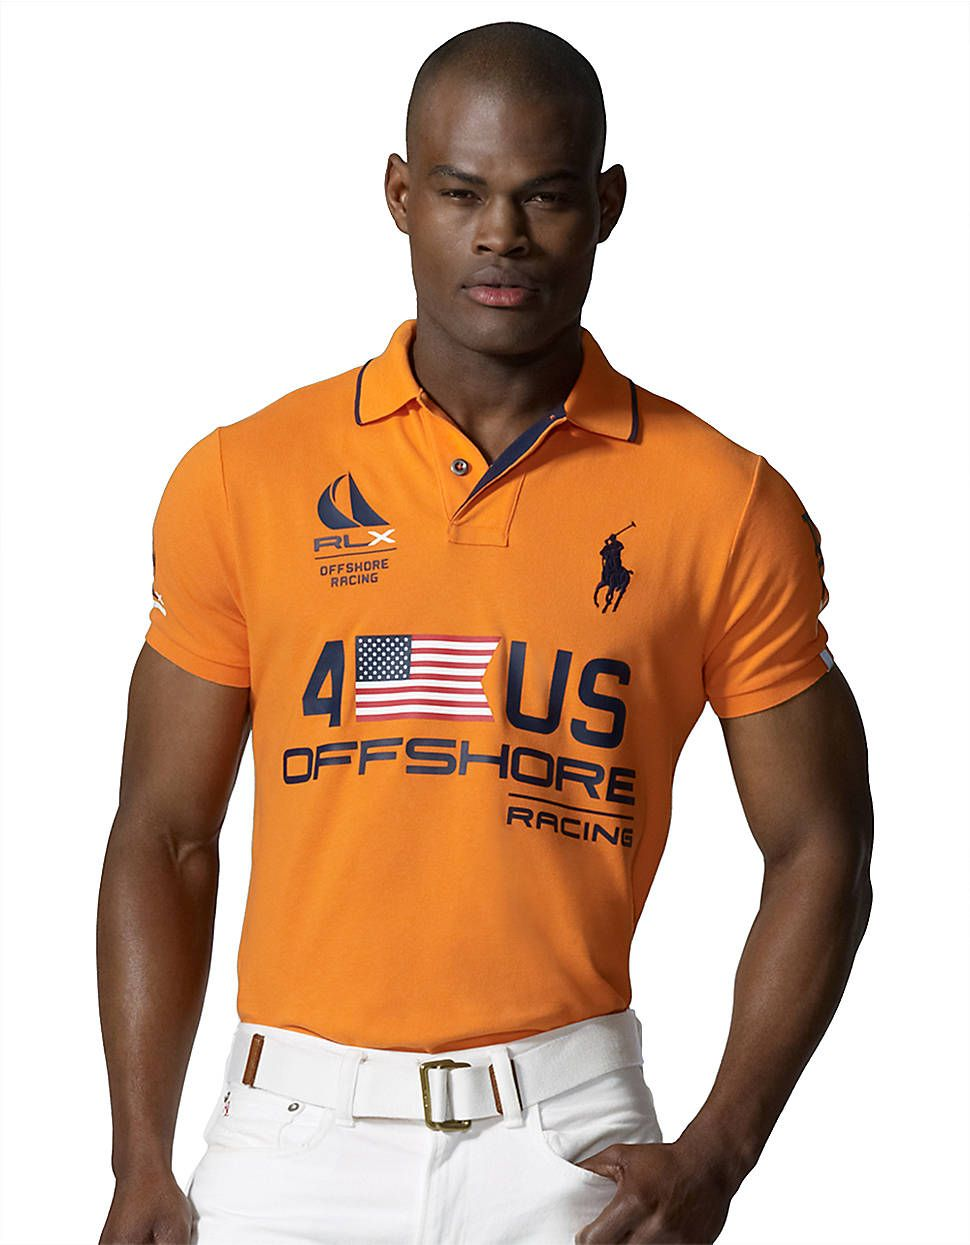 21c4b957523f Polo Ralph Lauren Rlx Short-sleeved Usthemed Offshore Racing Mesh Polo in  Orange for Men